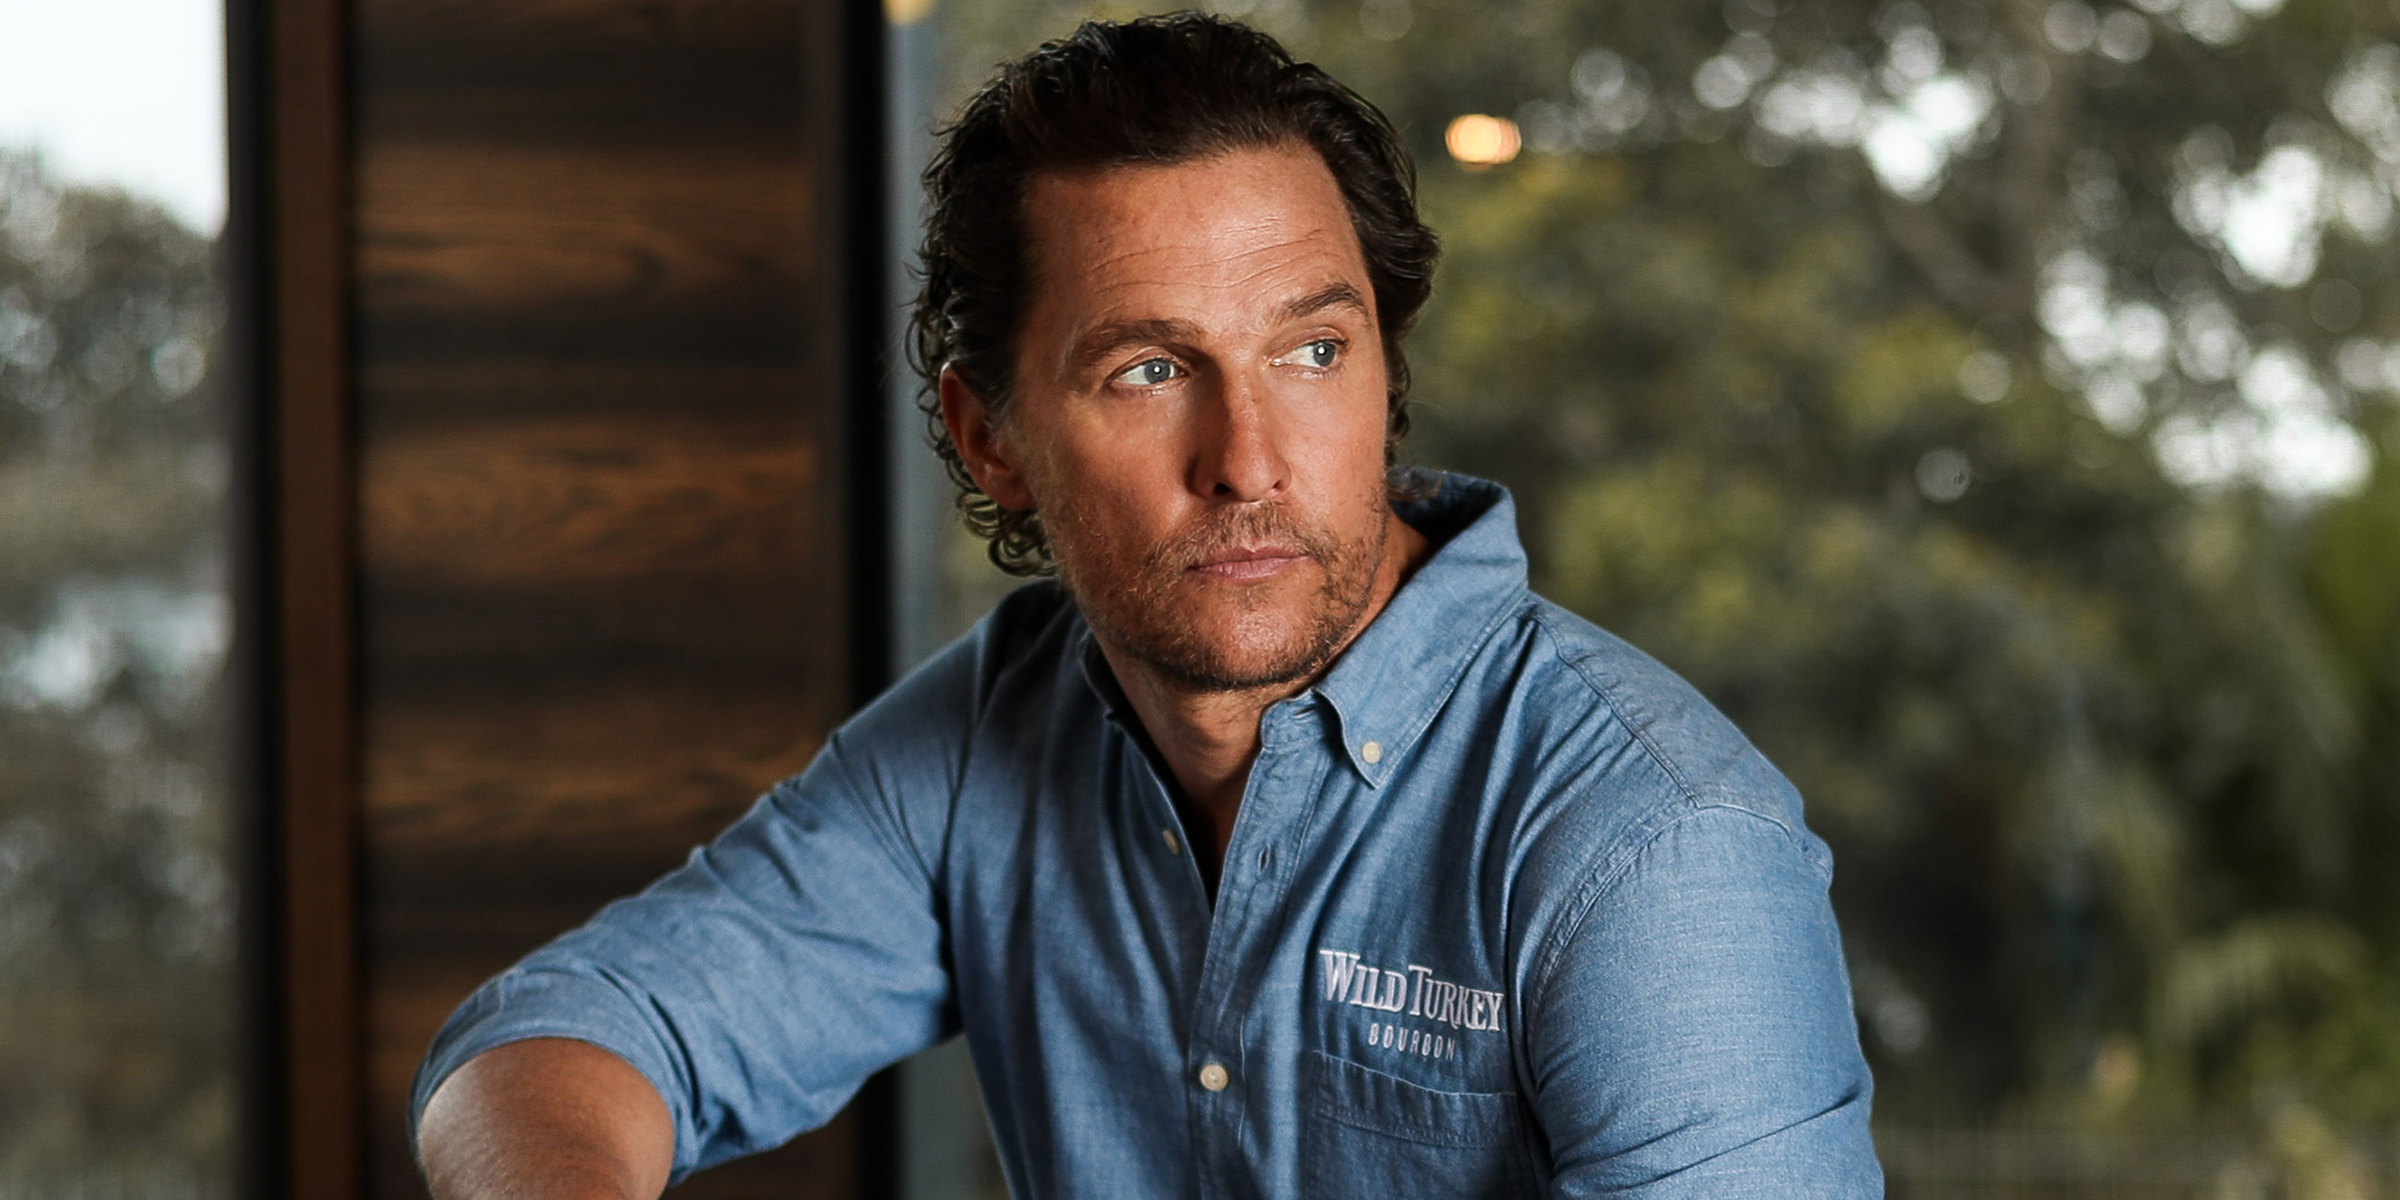 SYDNEY, AUSTRALIA - NOVEMBER 20: Matthew McConaughey launched an off-grid cabin he co-designed with Wild Turkey's charity initiative, With Thanks, at The Royal Botanic Gardens November 20, 2019 in Sydney, Australia. (Photo by Brendon Thorne/Getty Images for Wild Turkey)